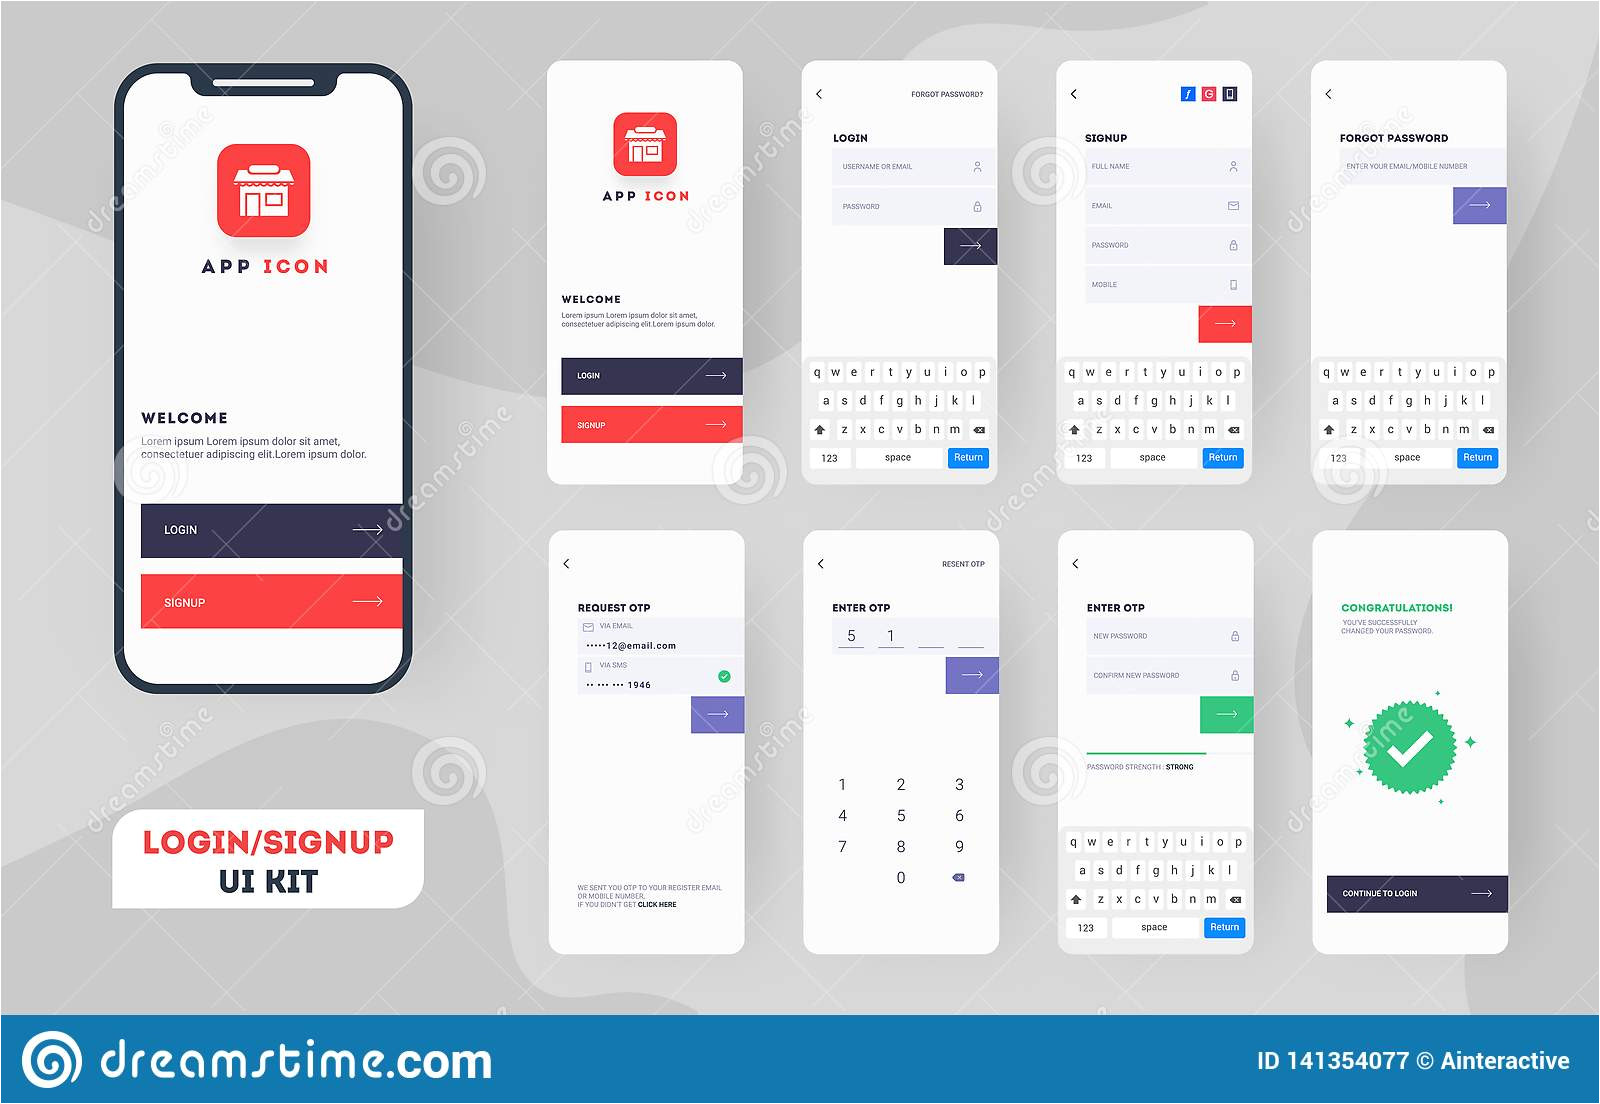 material design ui ux gui layout different login screens including account sign up lock screen mobile apps 141354077 jpg